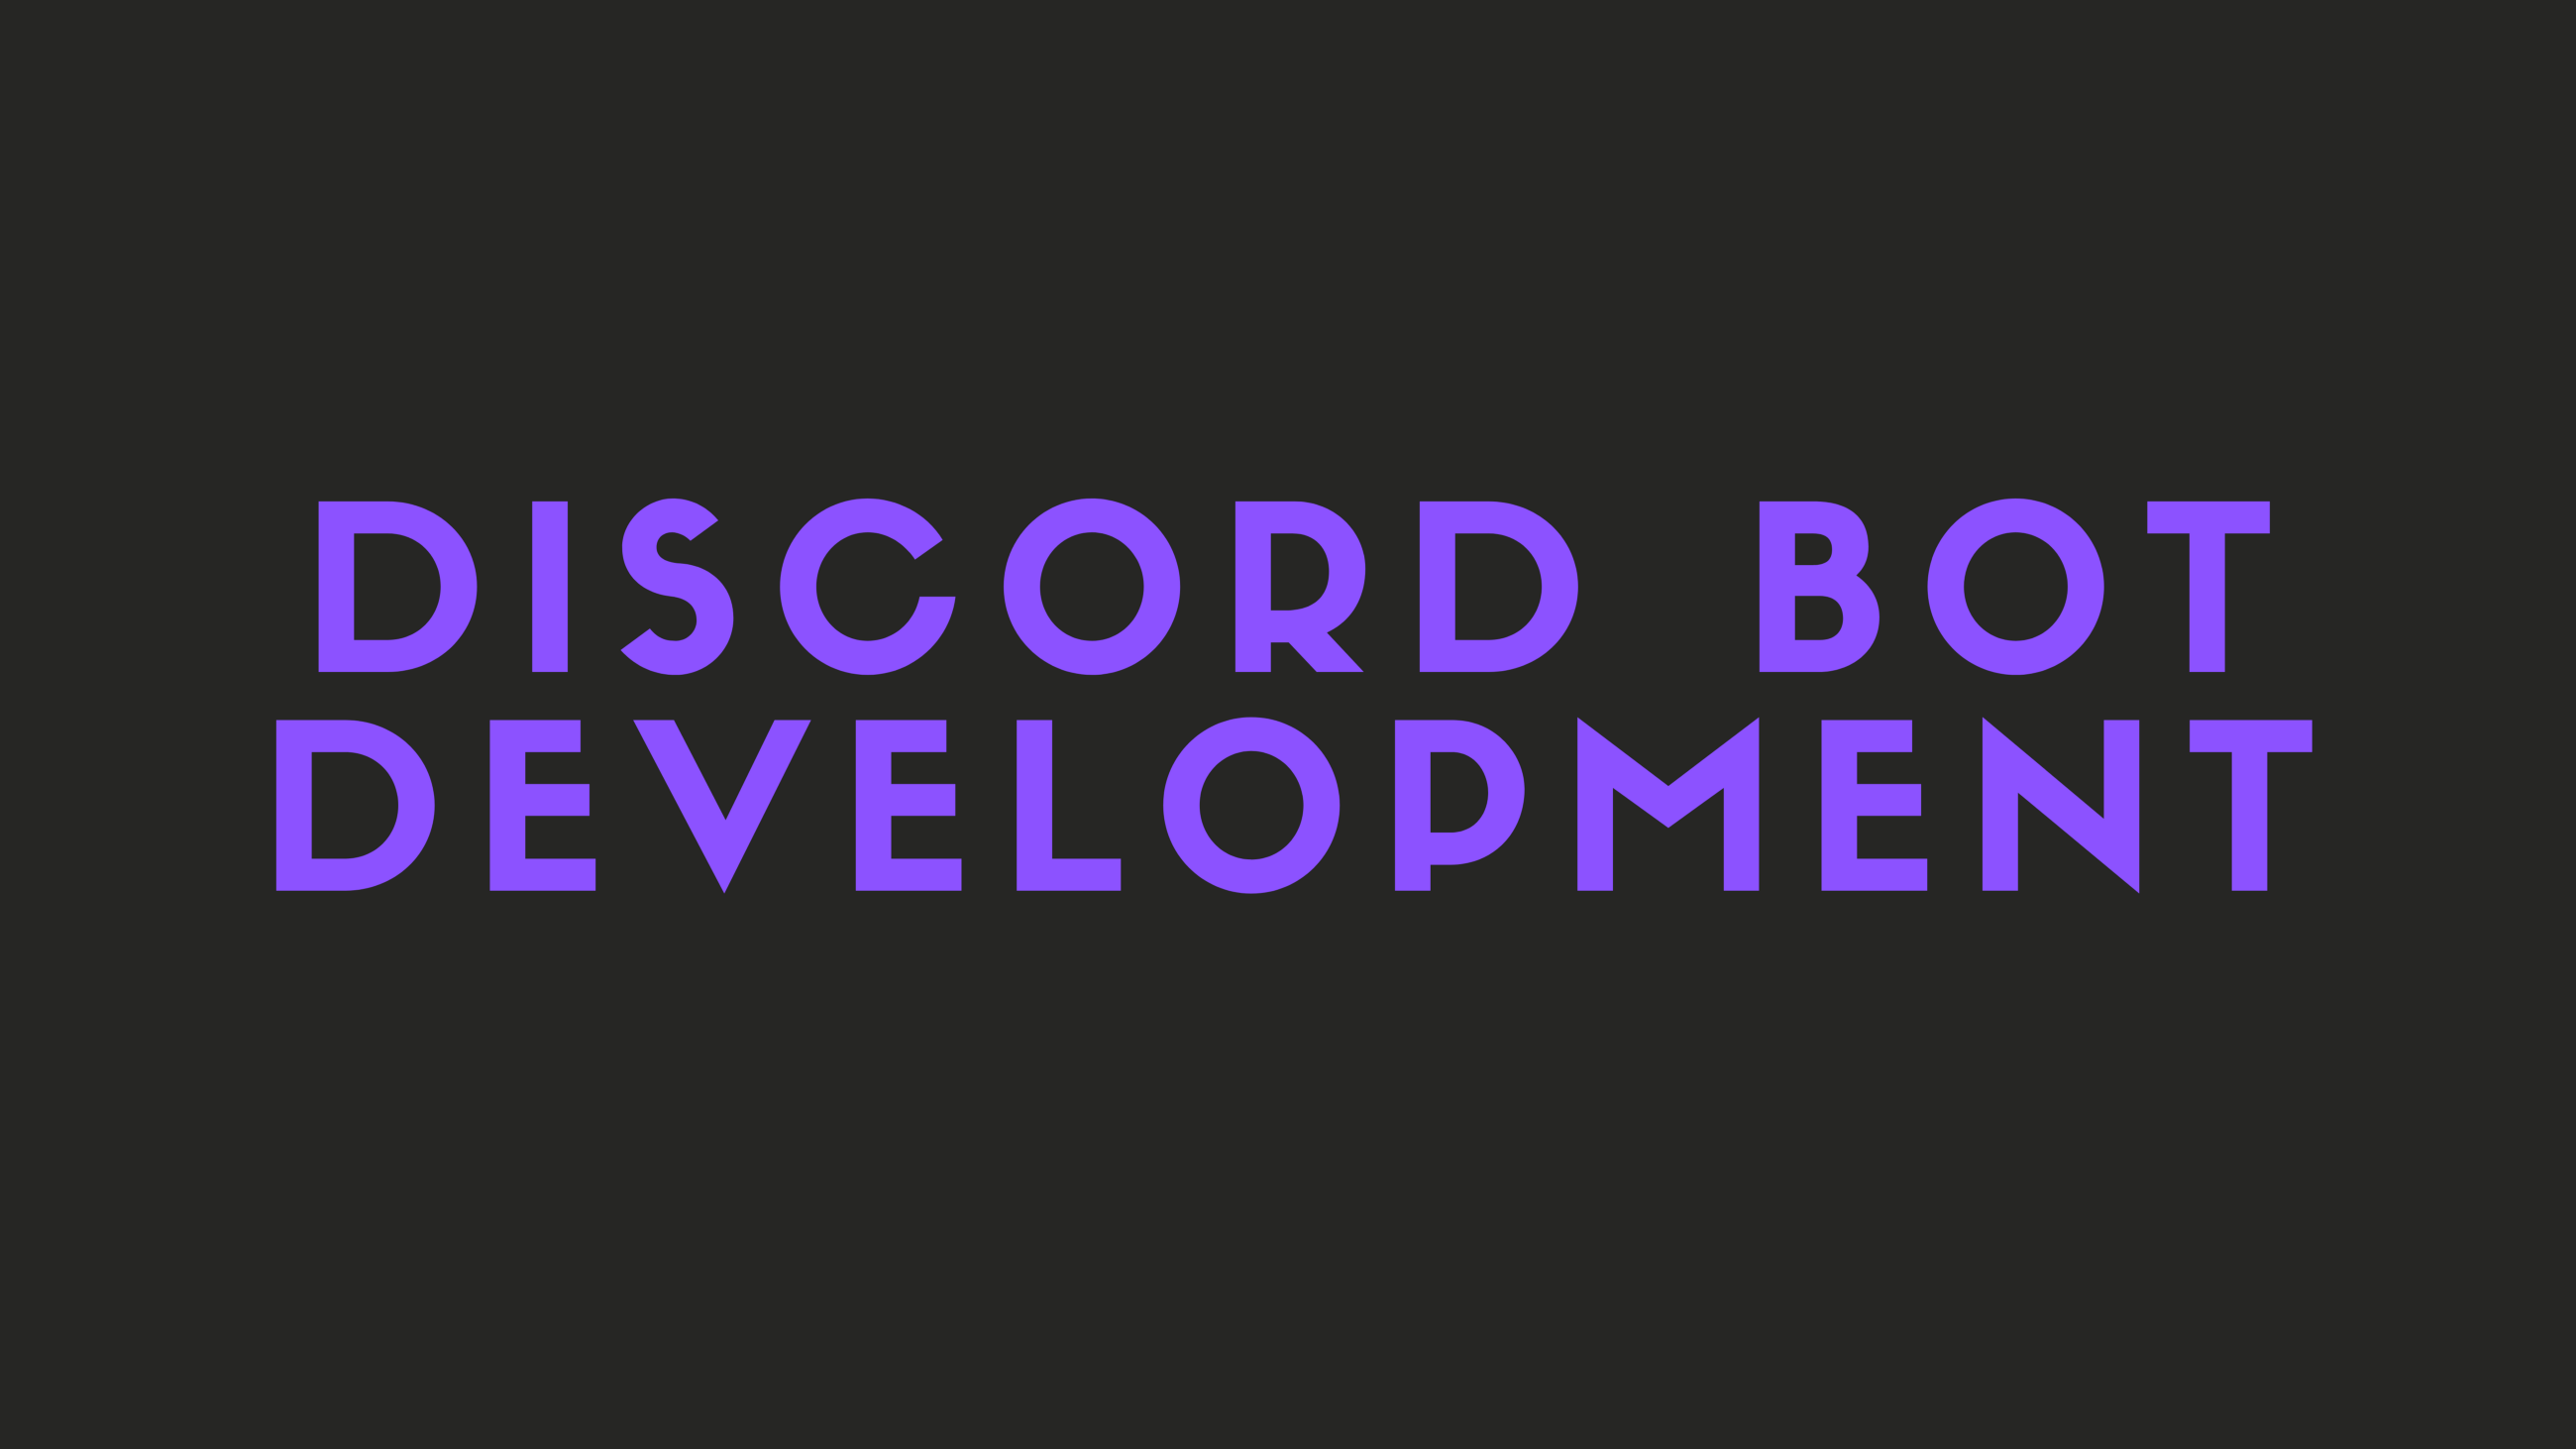 Getting Started with Discord Bot Development